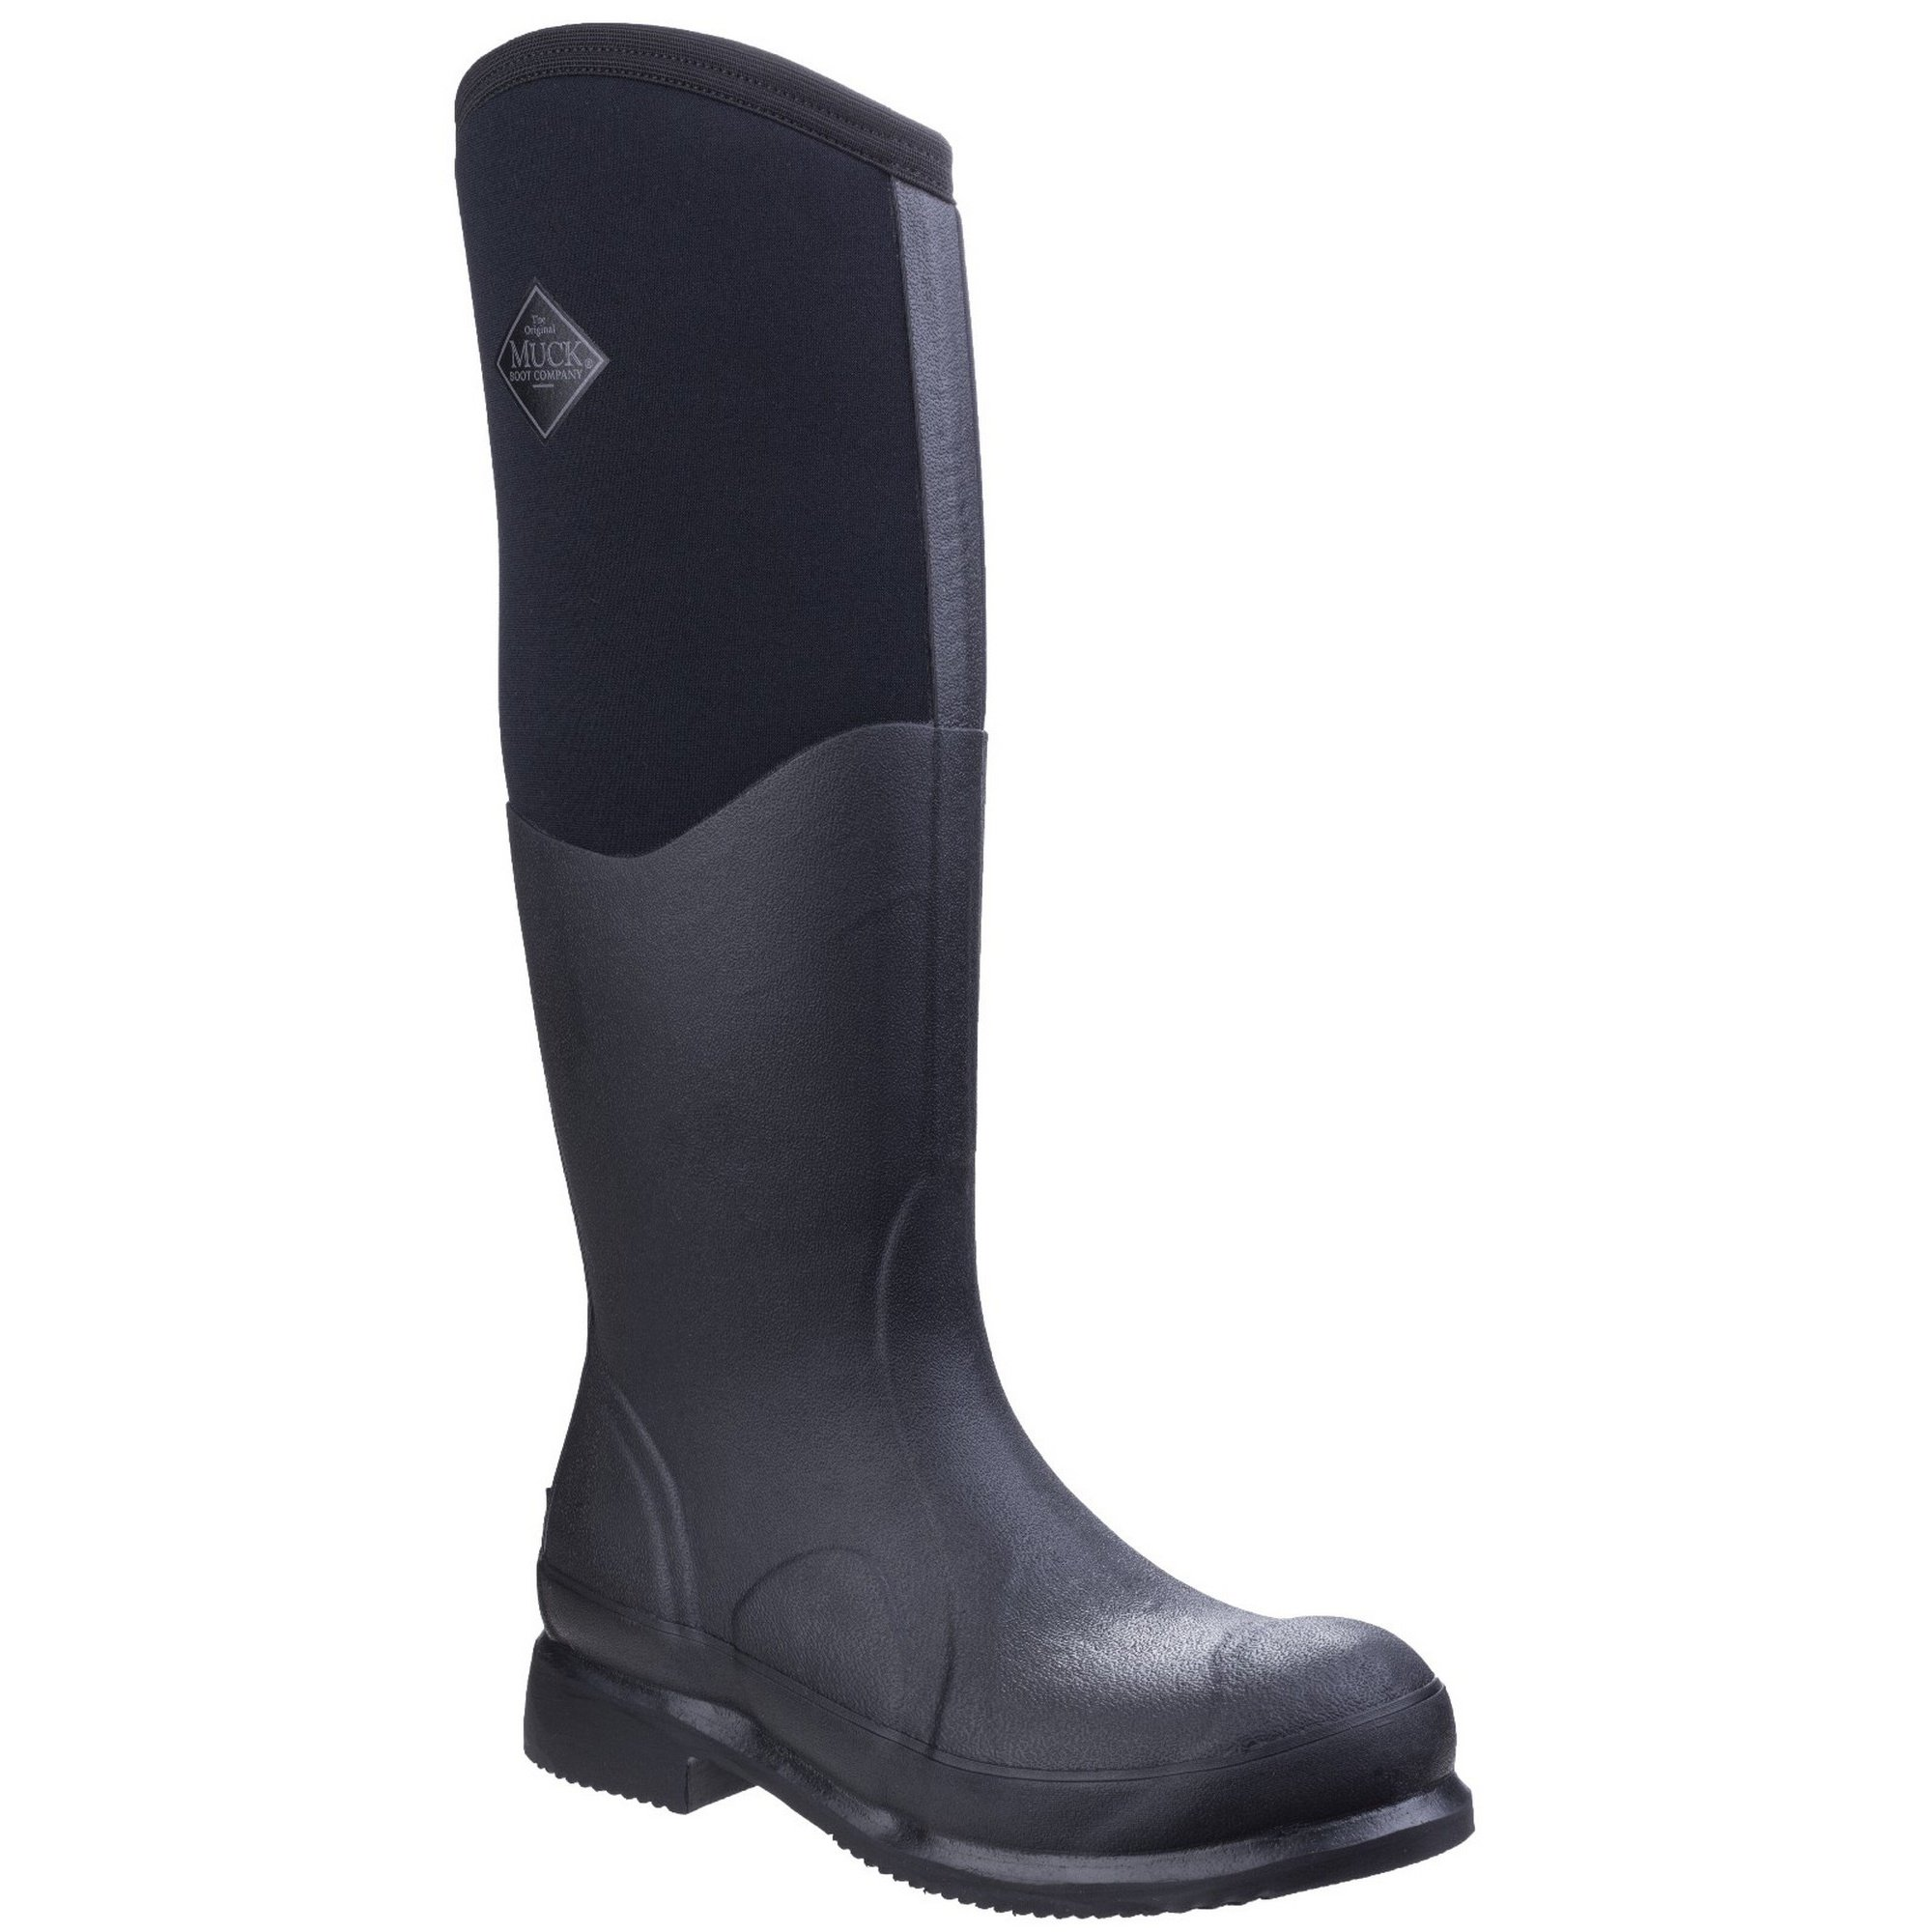 Muck Boots Unisex Colt Ryder All Conditions Riding Boots (10 M US/11 W US) (Black/Black)